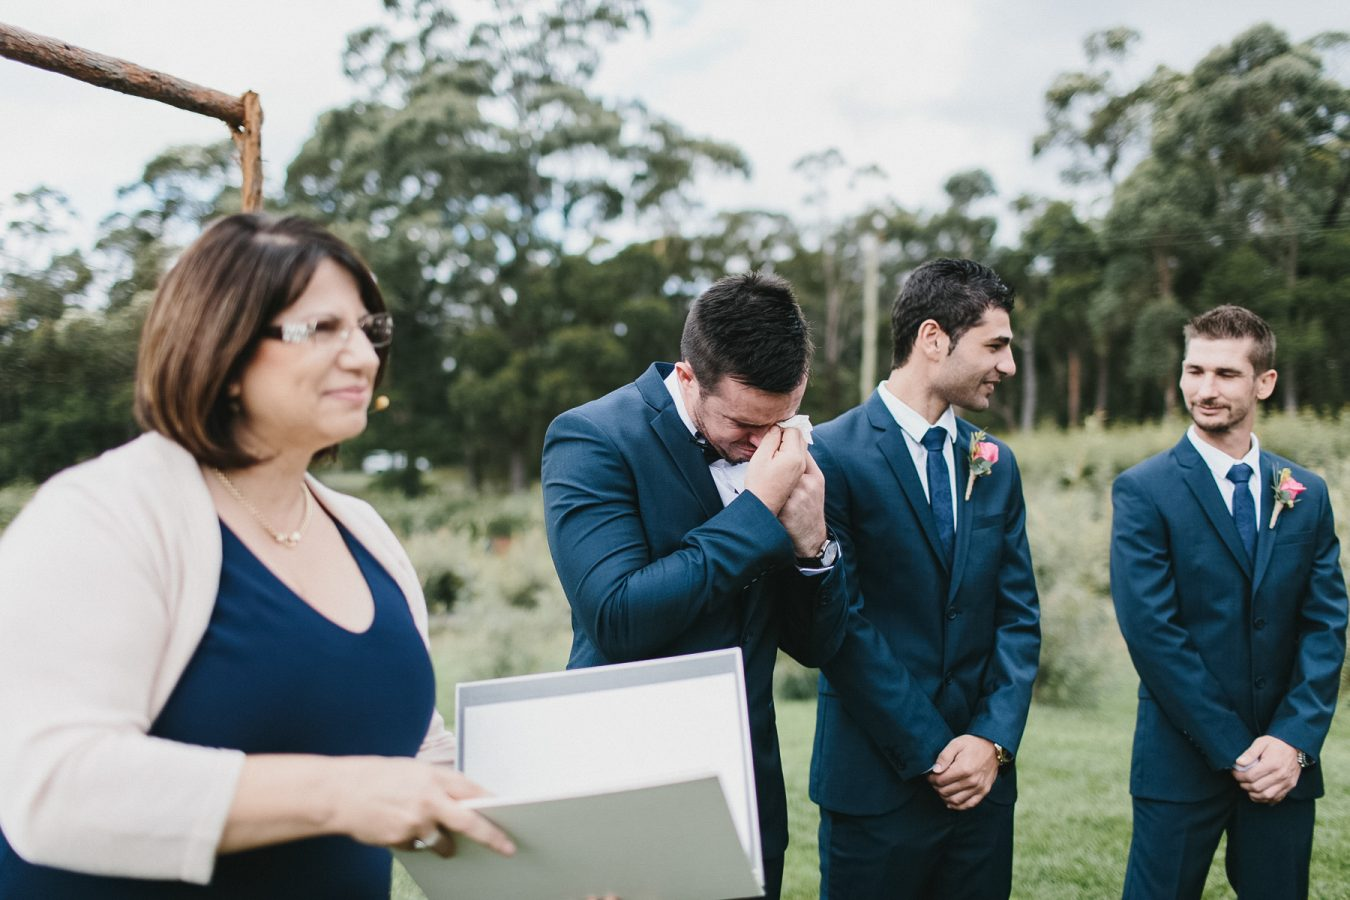 Courtney-Josh-Growwild-Bowral-southernhighlans-Wedding-45